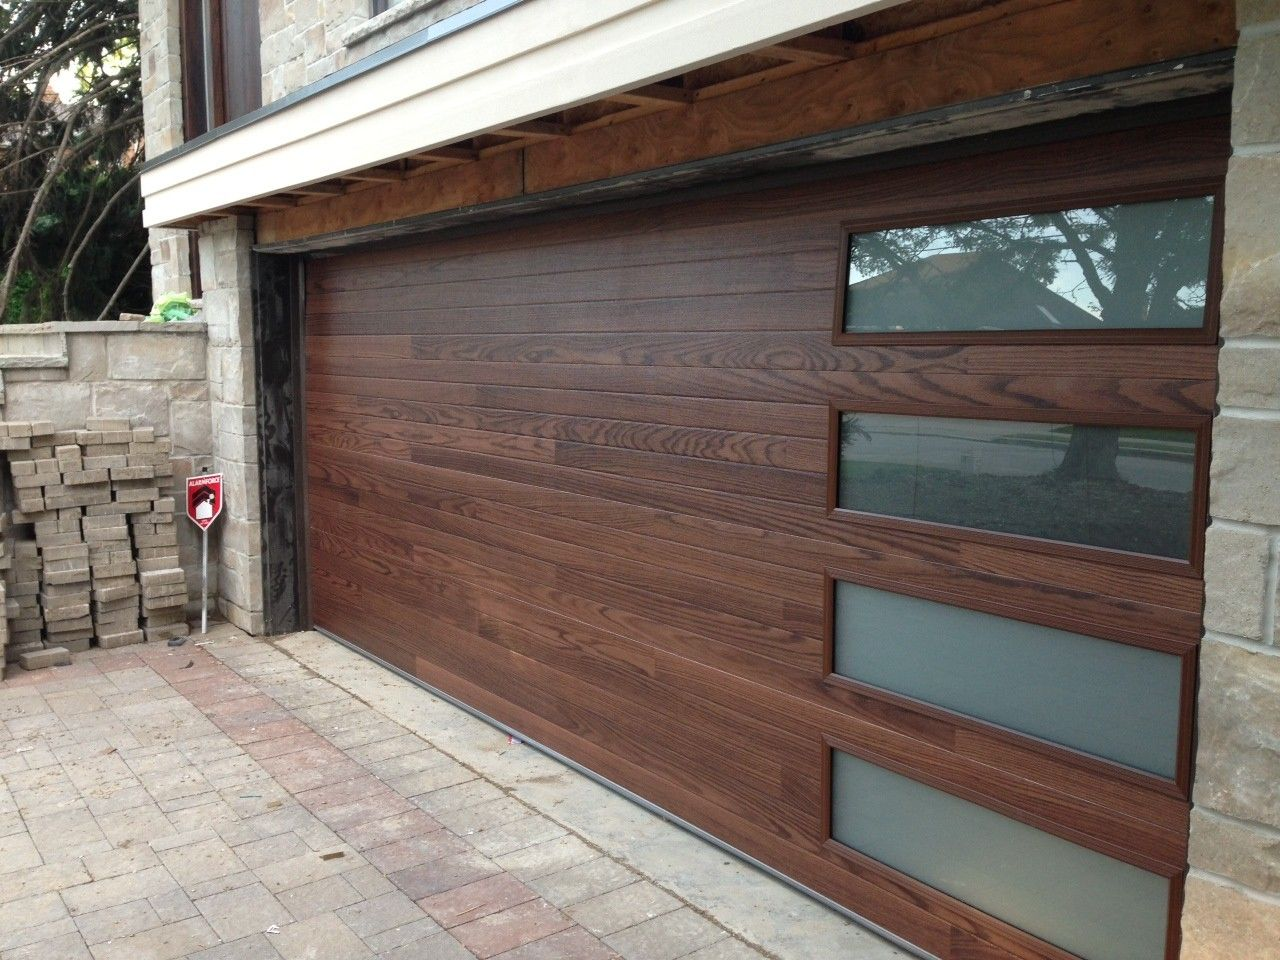 Modern Garage Modern Garage Door Modern 2 Car Garage: 2 car garage doors